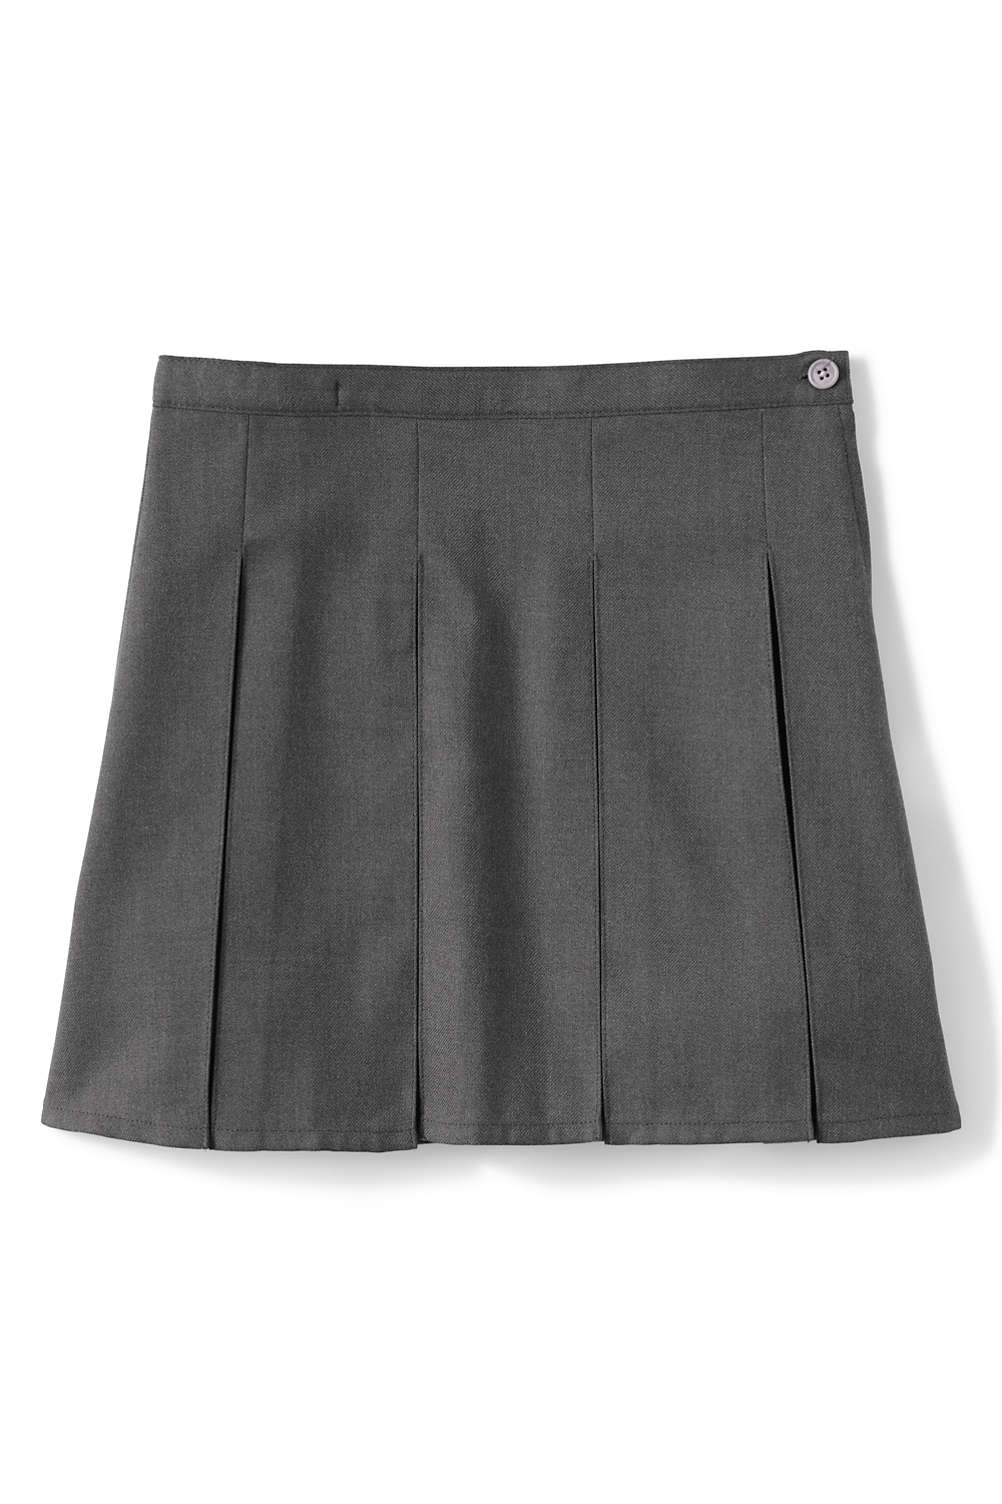 27b7f36586 School Uniform Solid Box Pleat Skirt Top of Knee from Lands' End